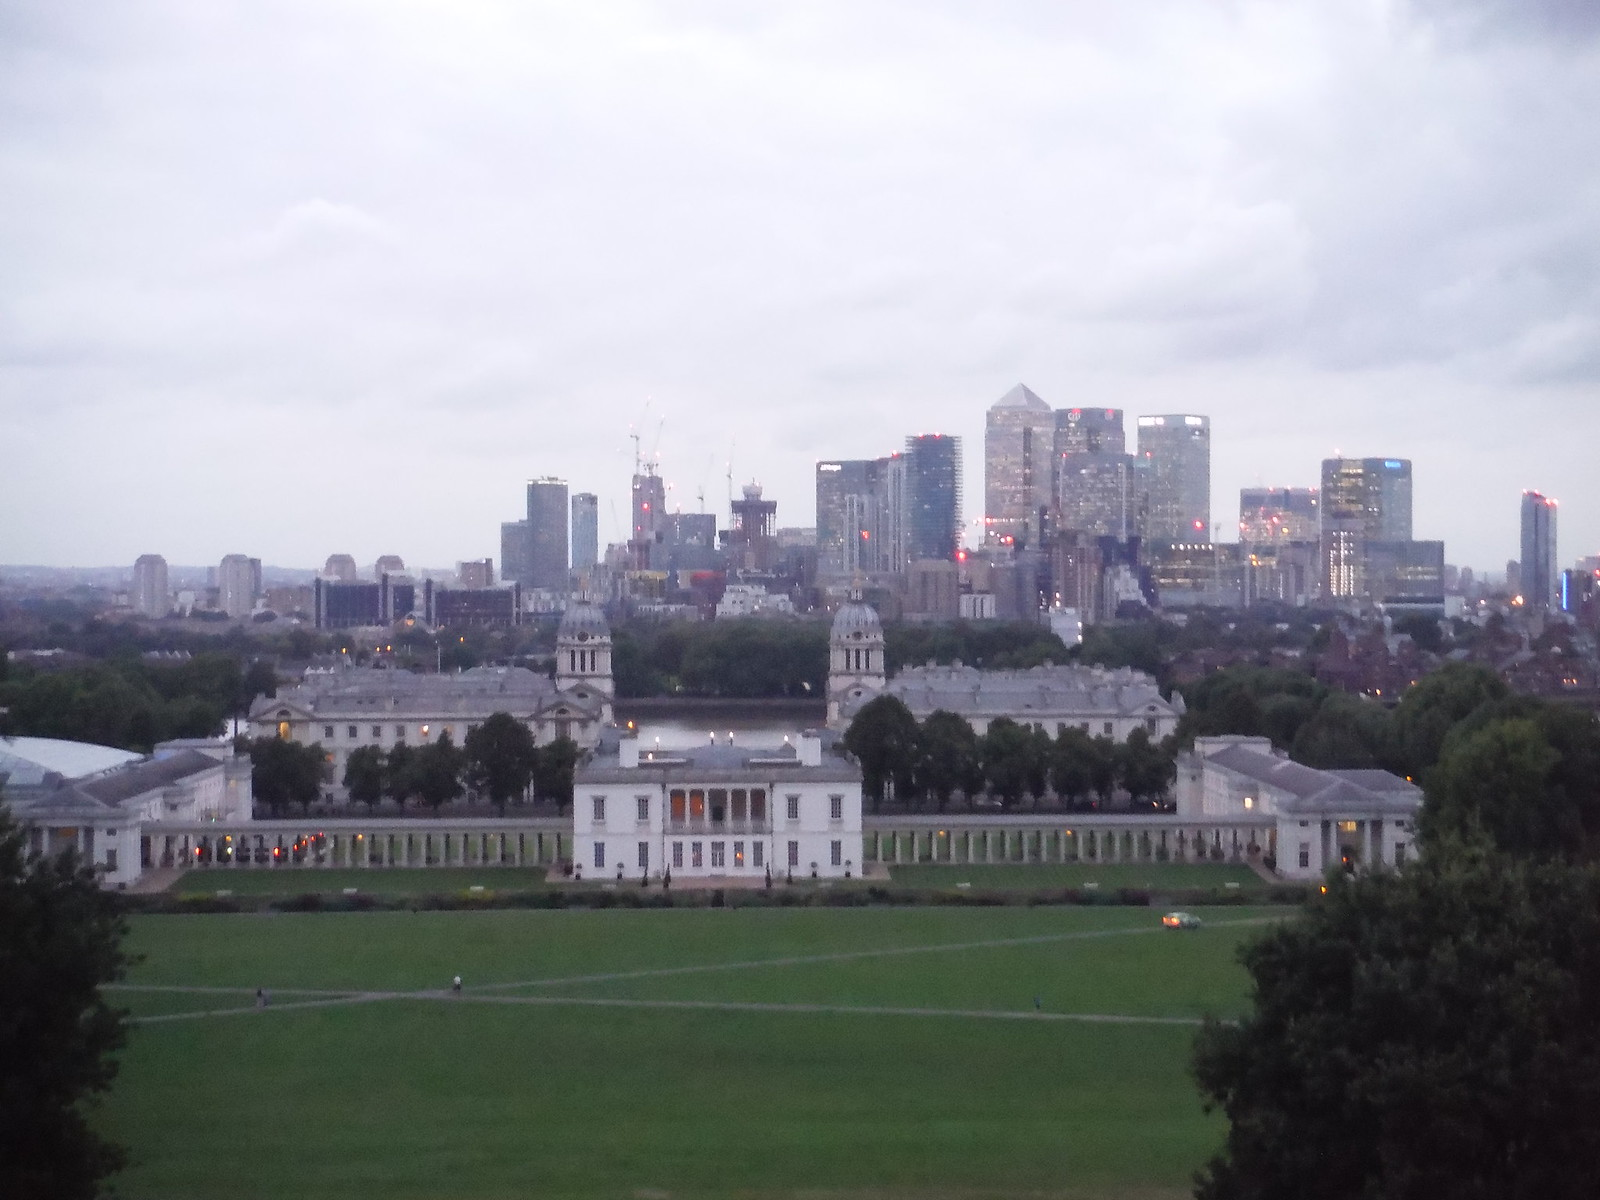 Greenwich Park: View from Viewpoint by Observatory SWC Short Walk 12 - Greenwich Park